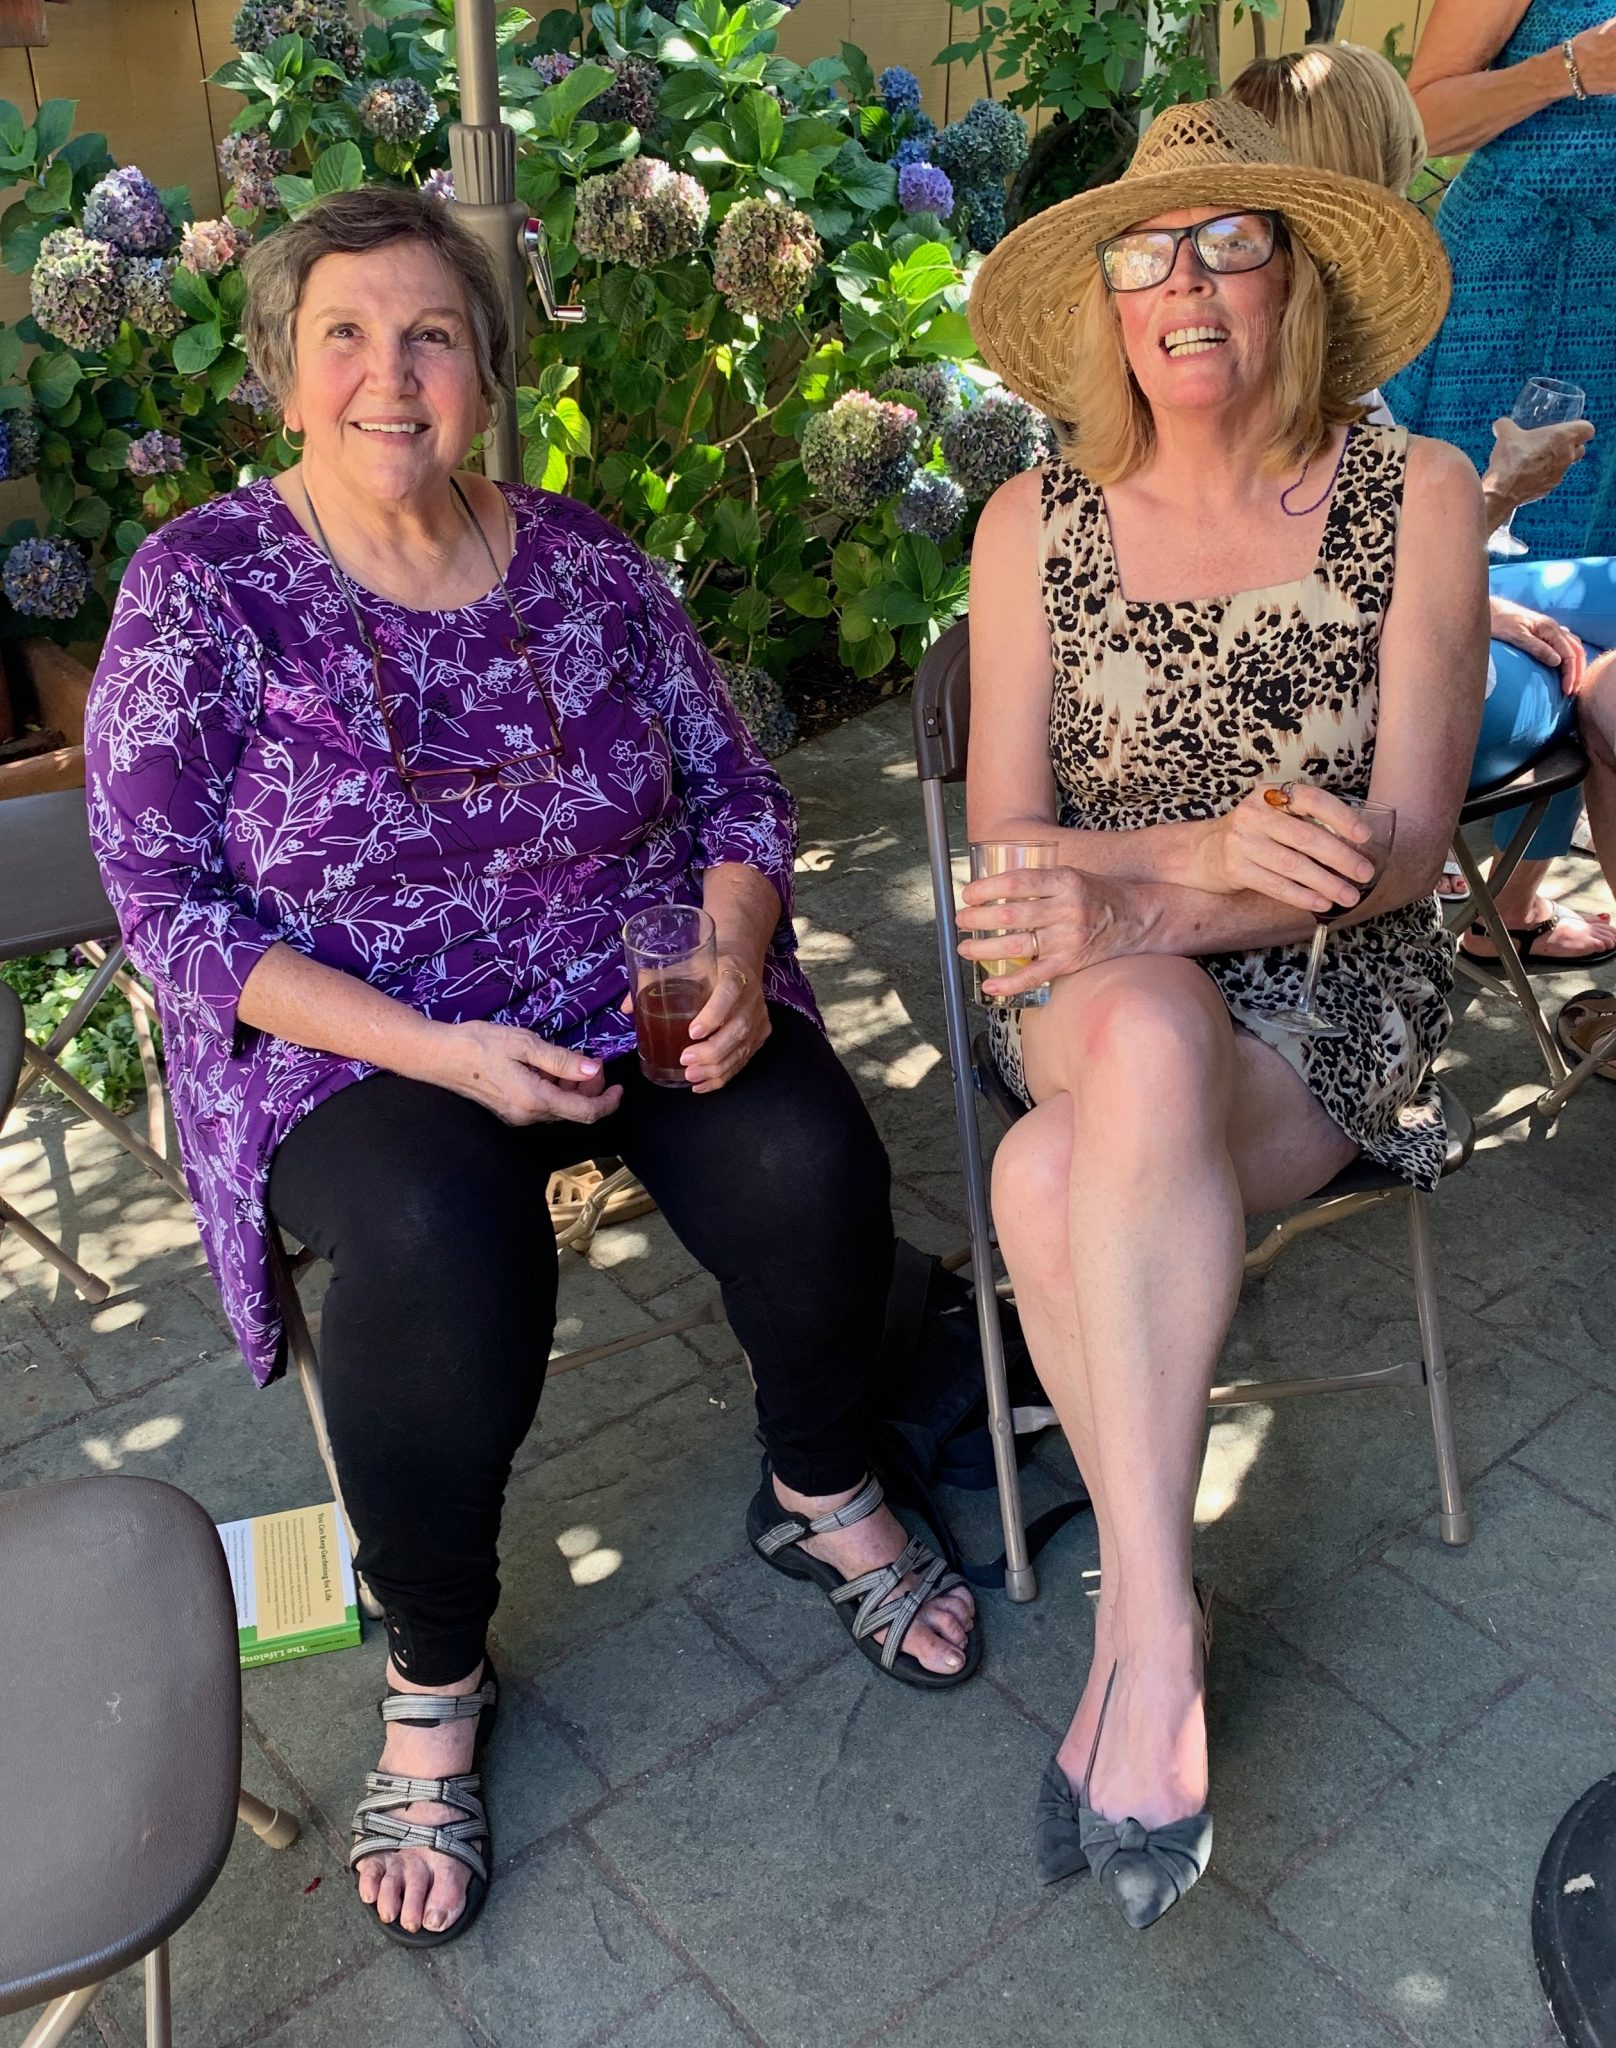 Lori Hall and Karen Turcotte celebrating the launch of The Lifelong Gardener: Garden with Ease & Joy at Any Age